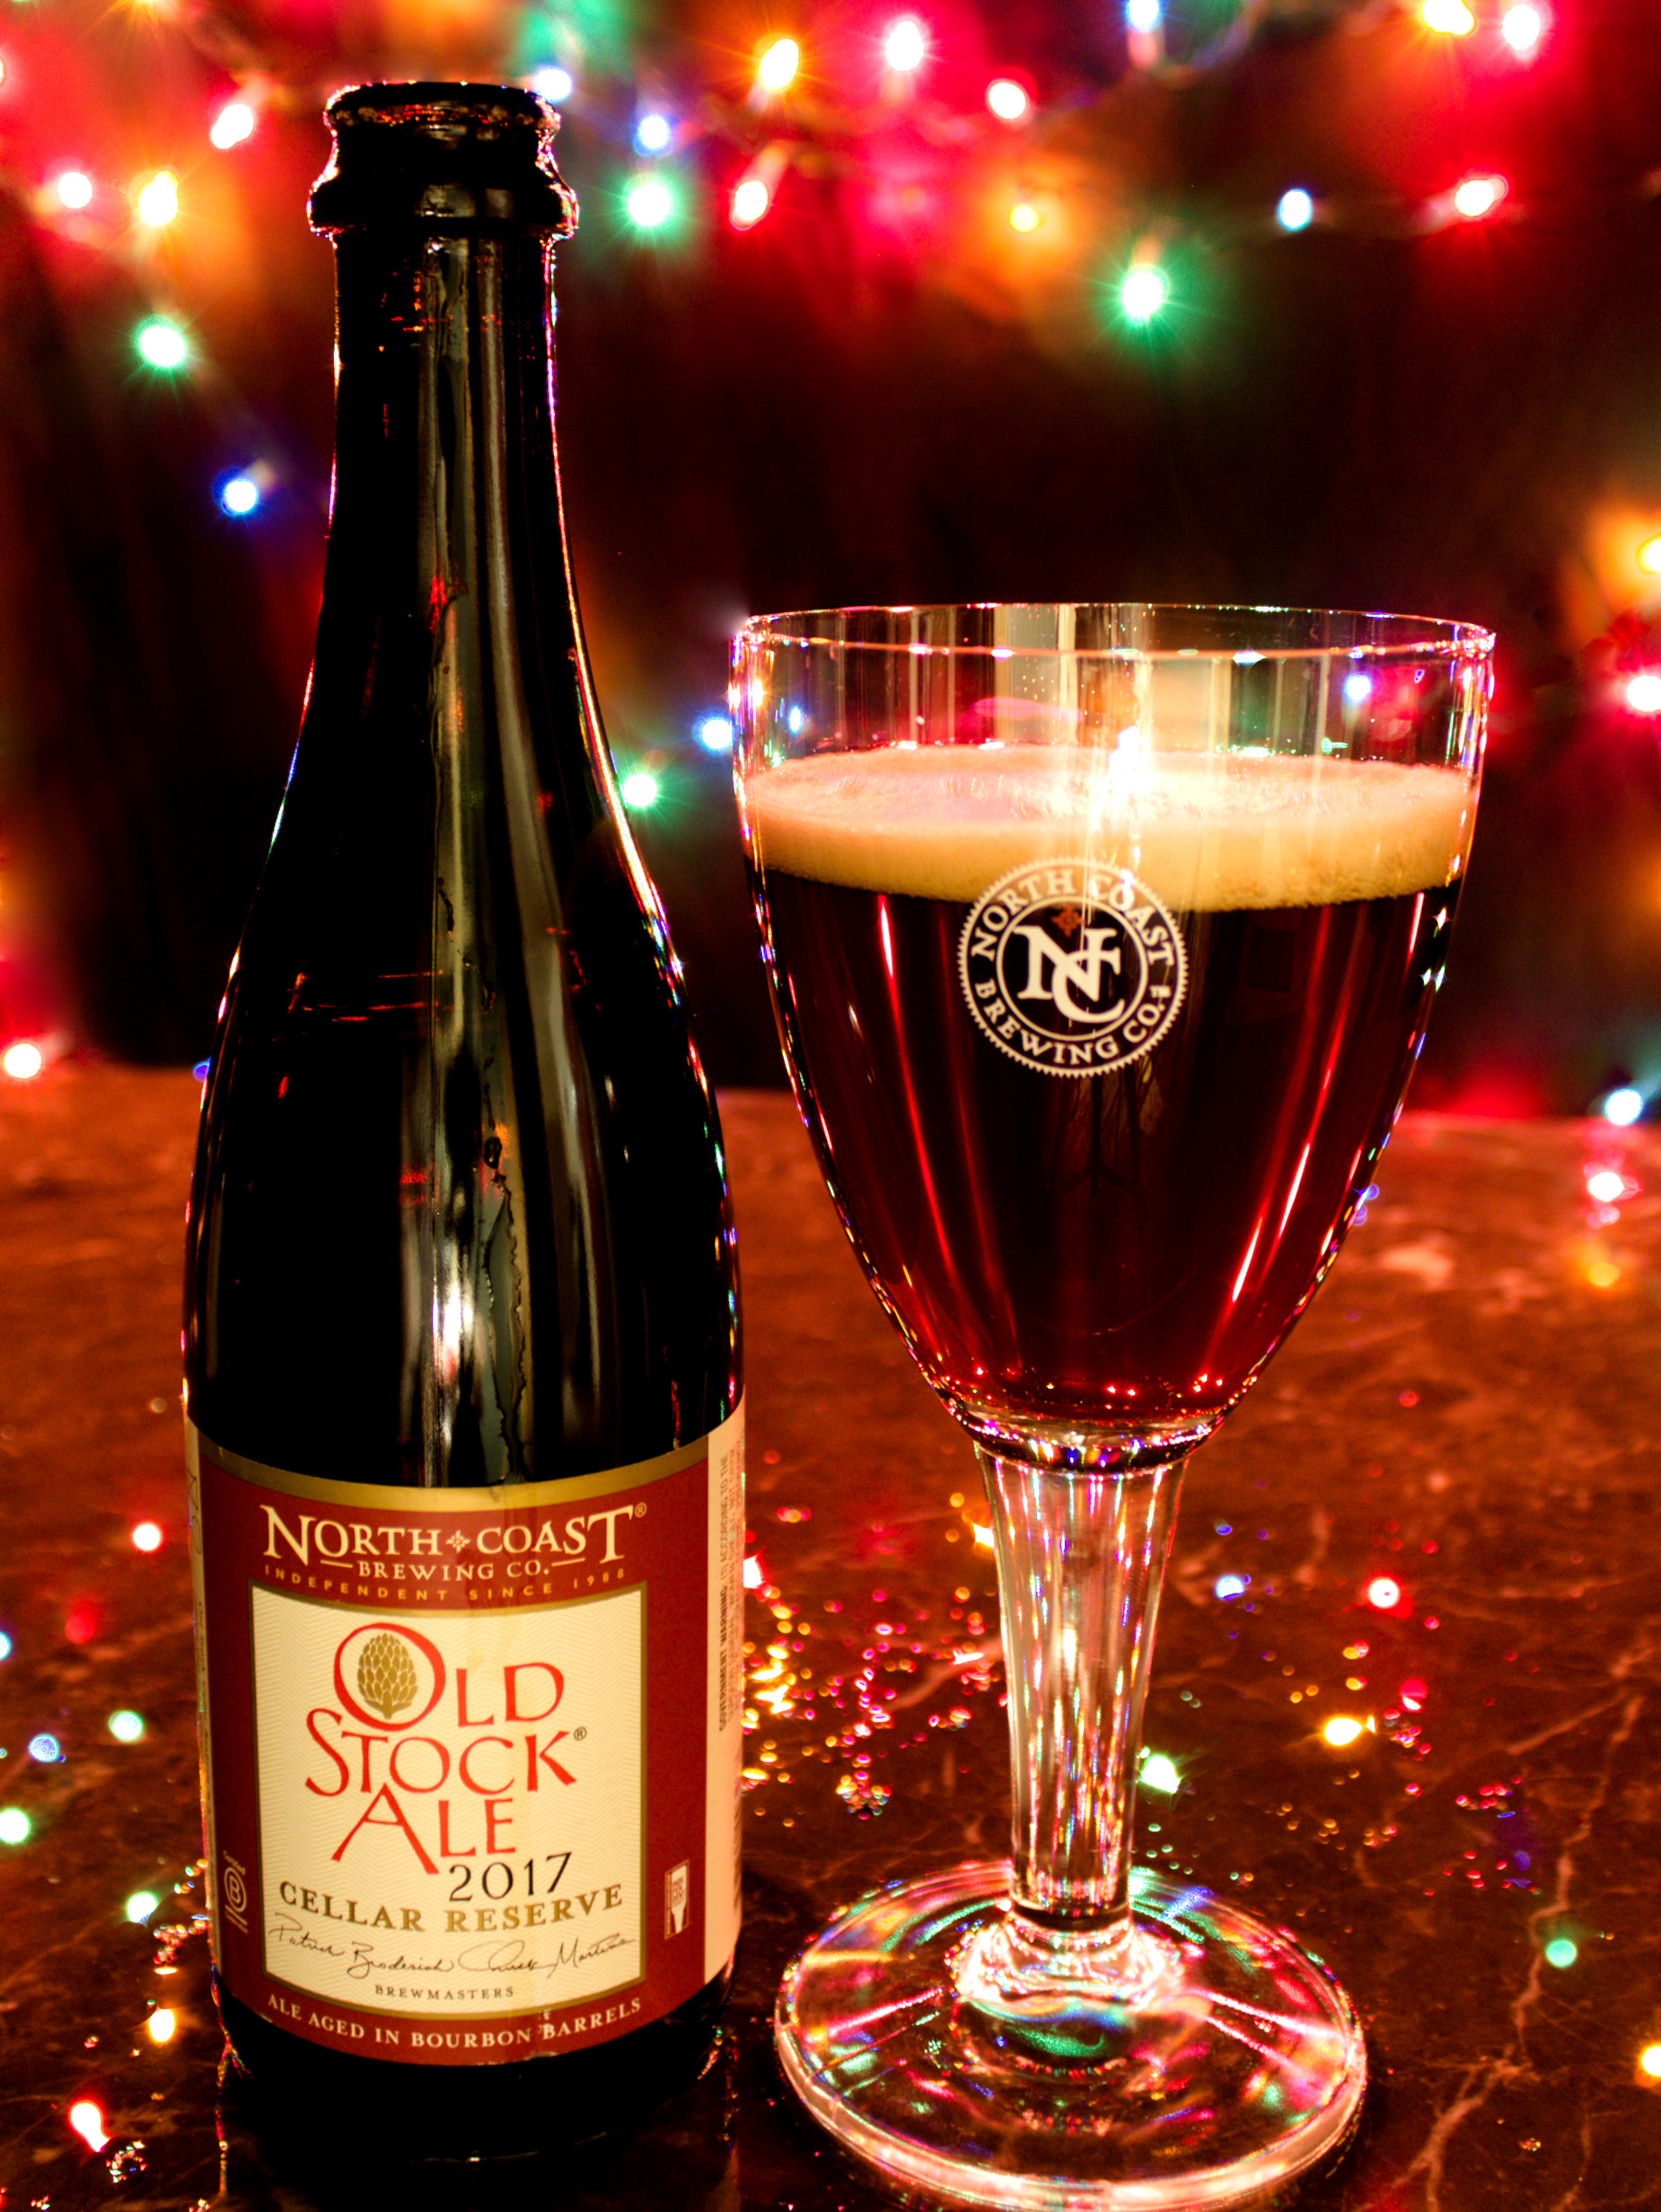 image of Old Stock Cellar Reserve courtesy of North Coast Brewing